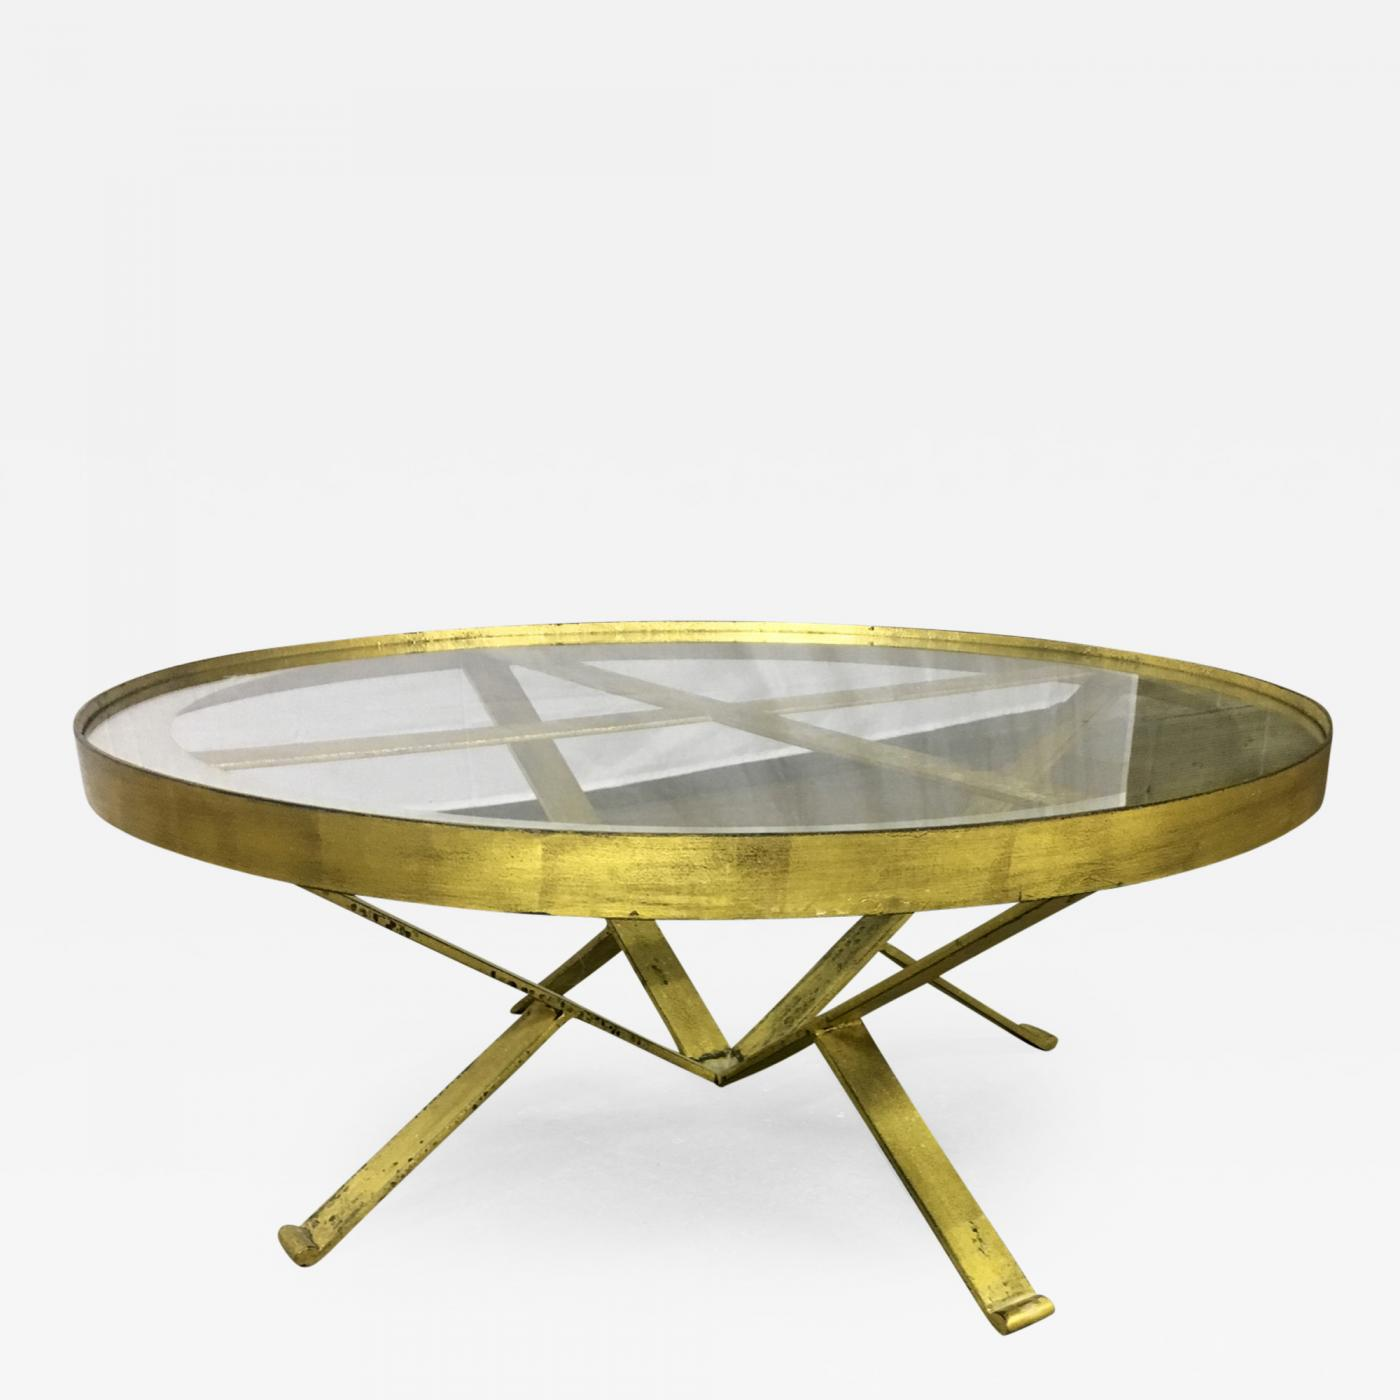 French Gold Coffee Table: Large Round 40s French Gold Leaf Wrought Iron Coffee Table